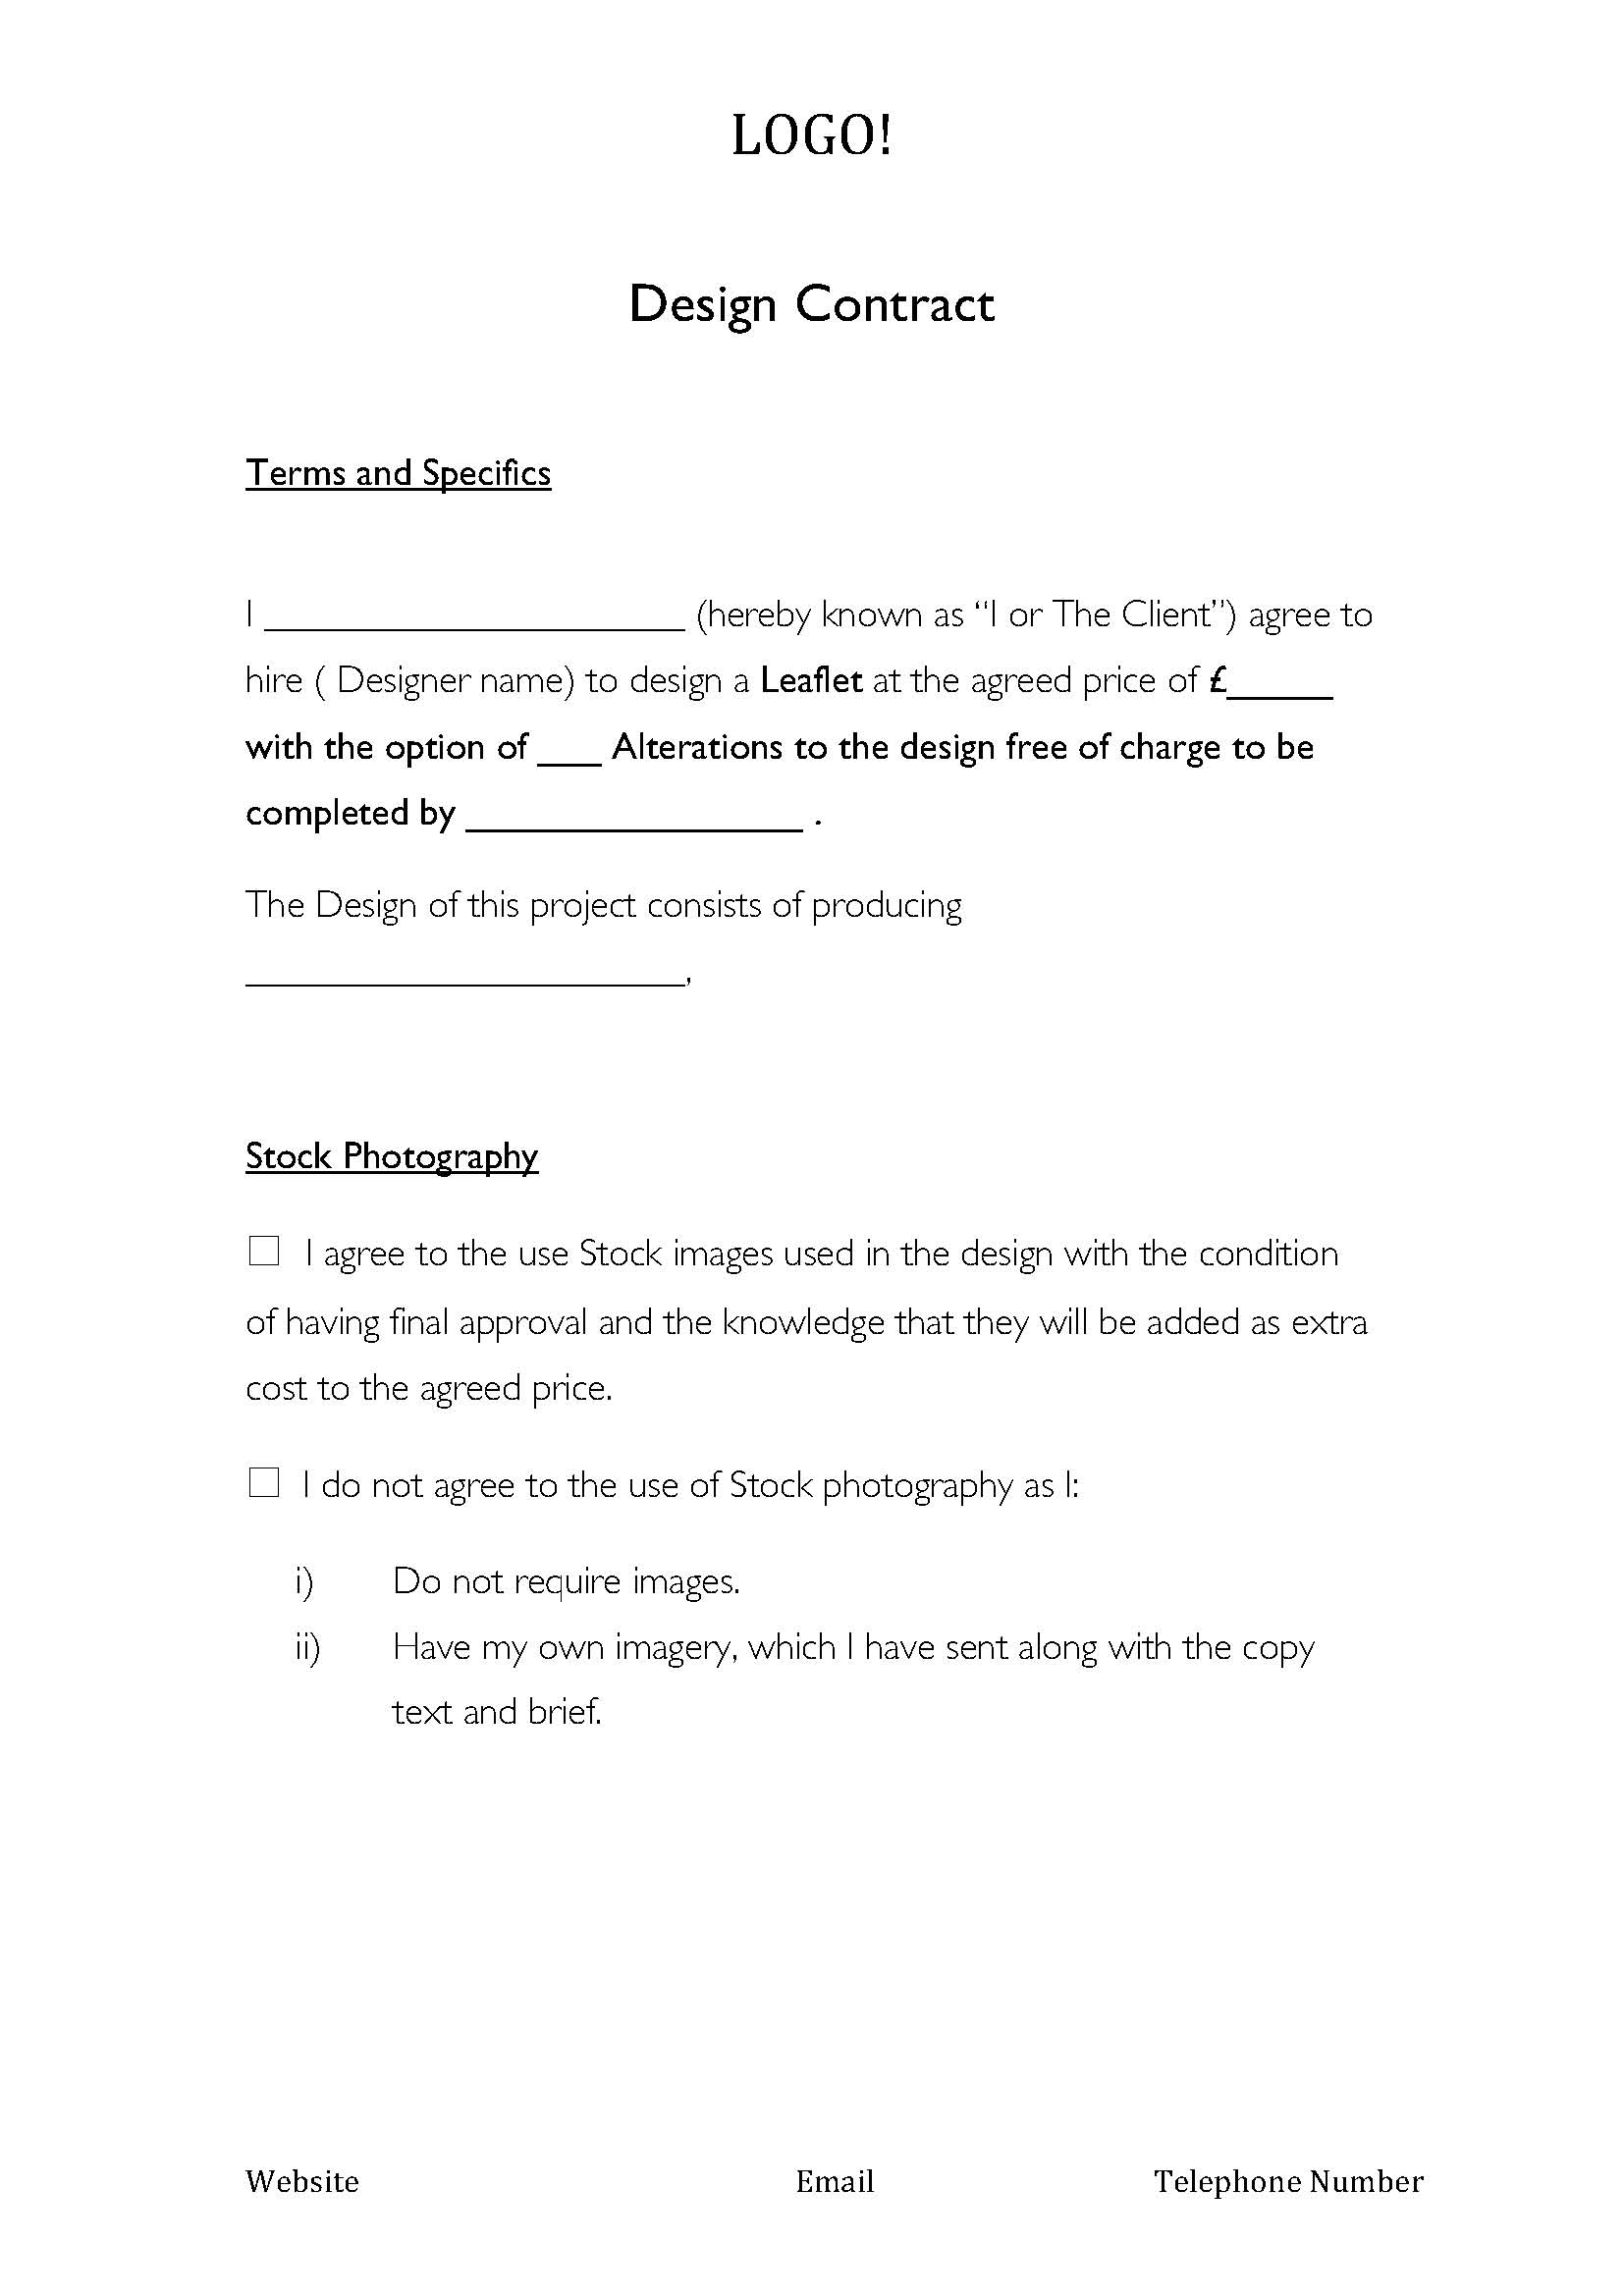 Freelance Graphic Design Contract Template Europe Tripsleep Co